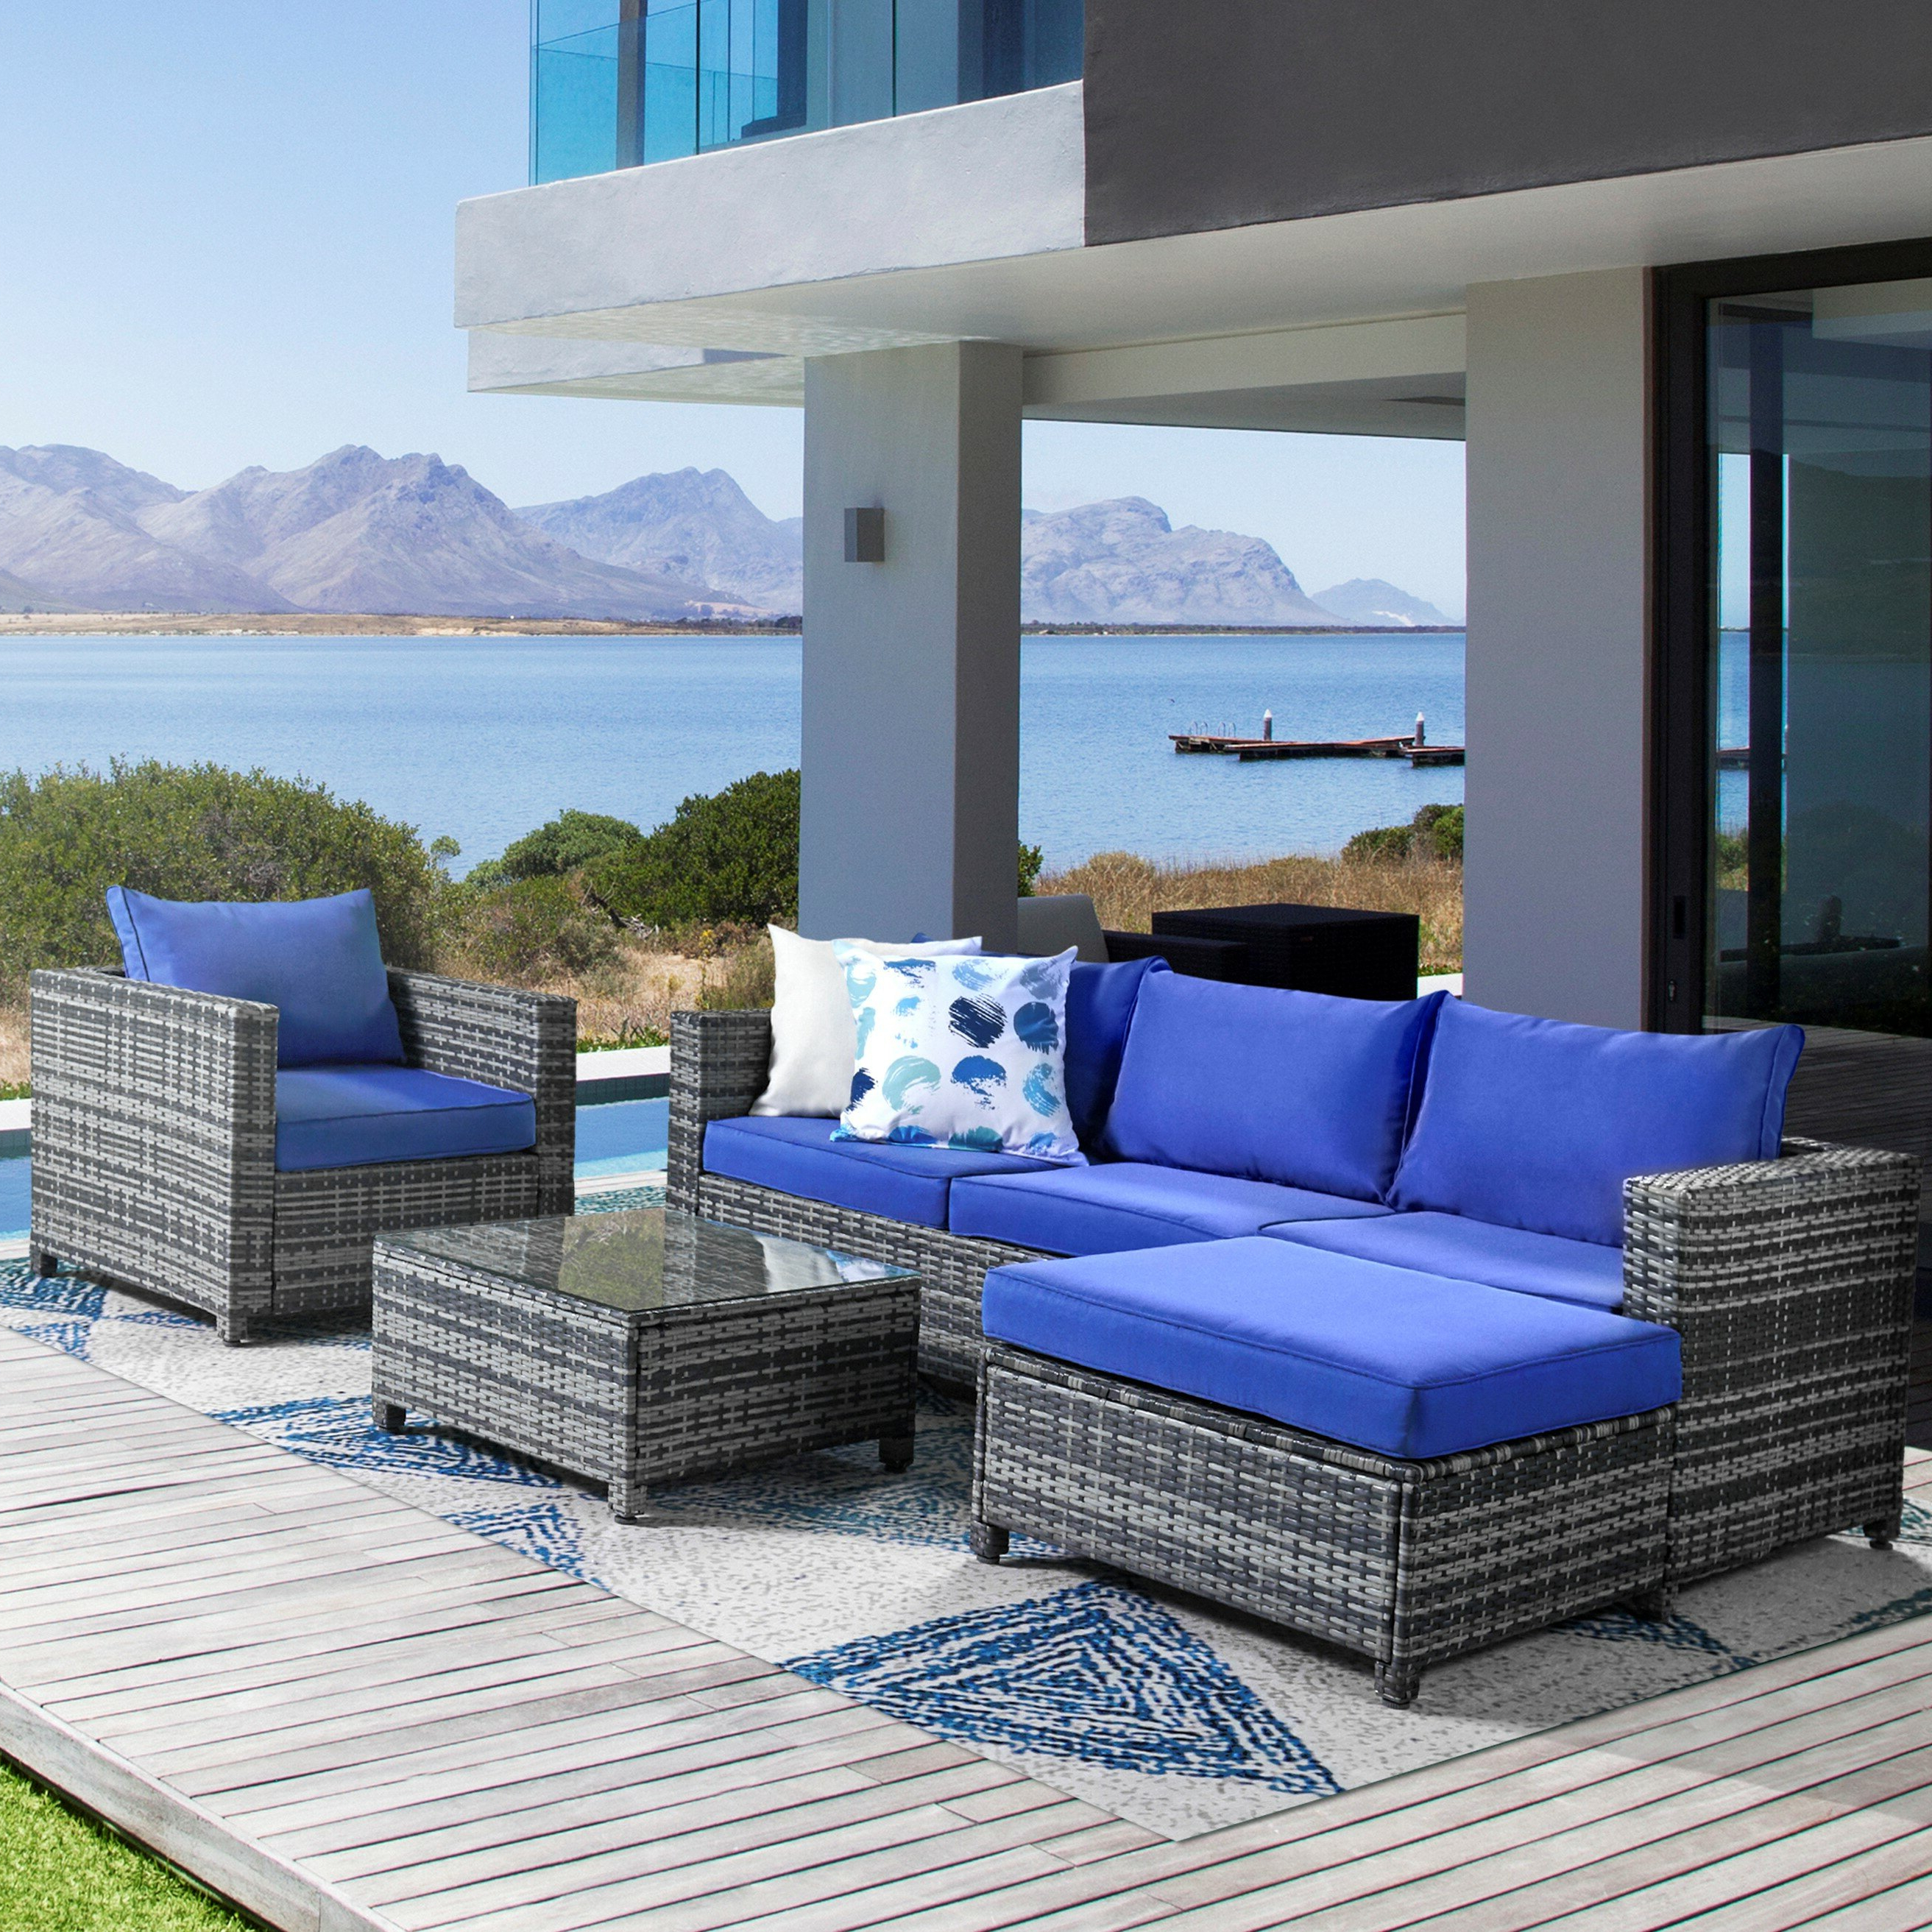 Widely Used Sascha Patio Sectional With Cushions For Rowley Patio Sofas Set With Cushions (View 20 of 20)